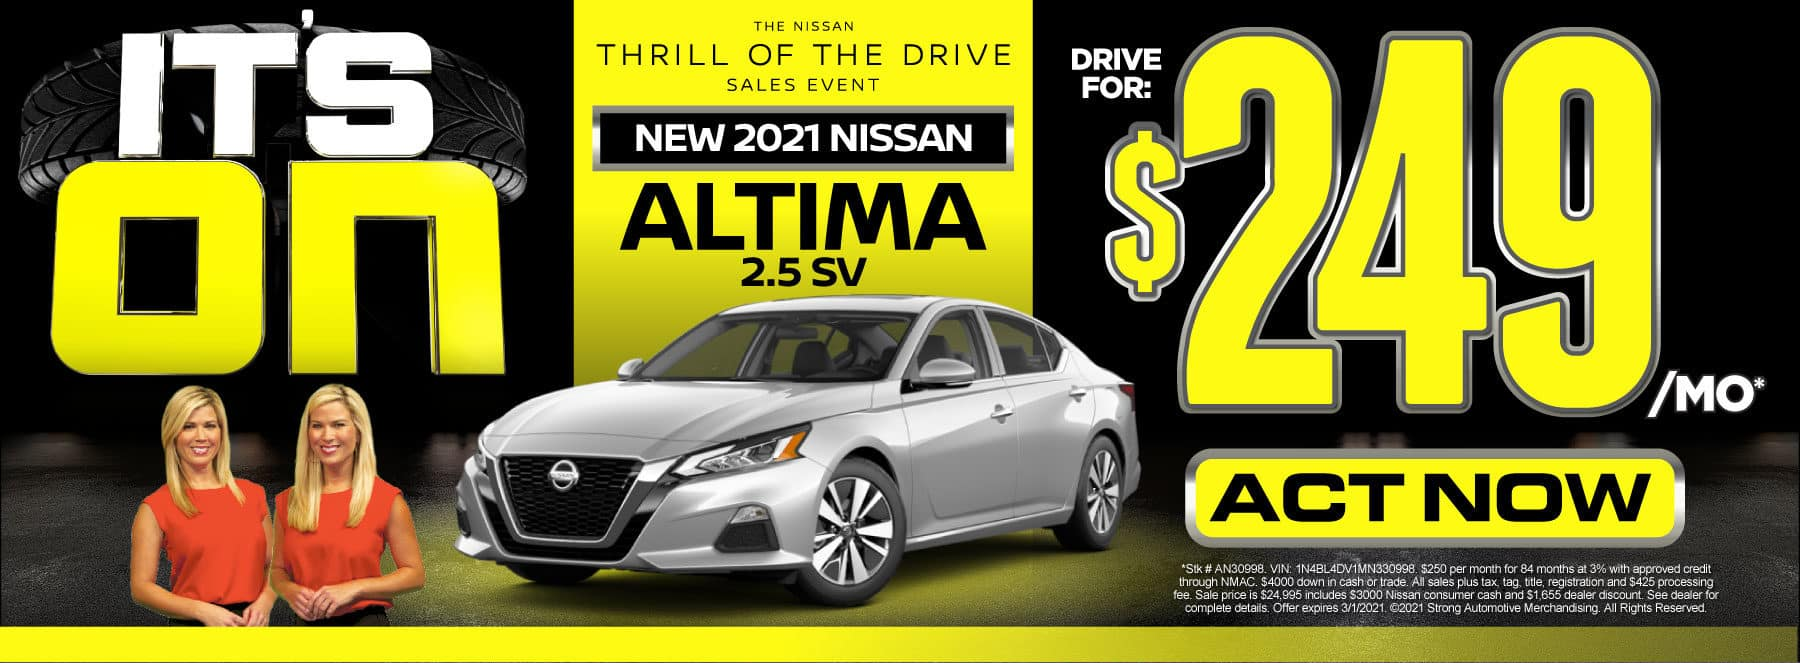 New 2021 Nissan Altima - Drive for $249 per month - Act Now